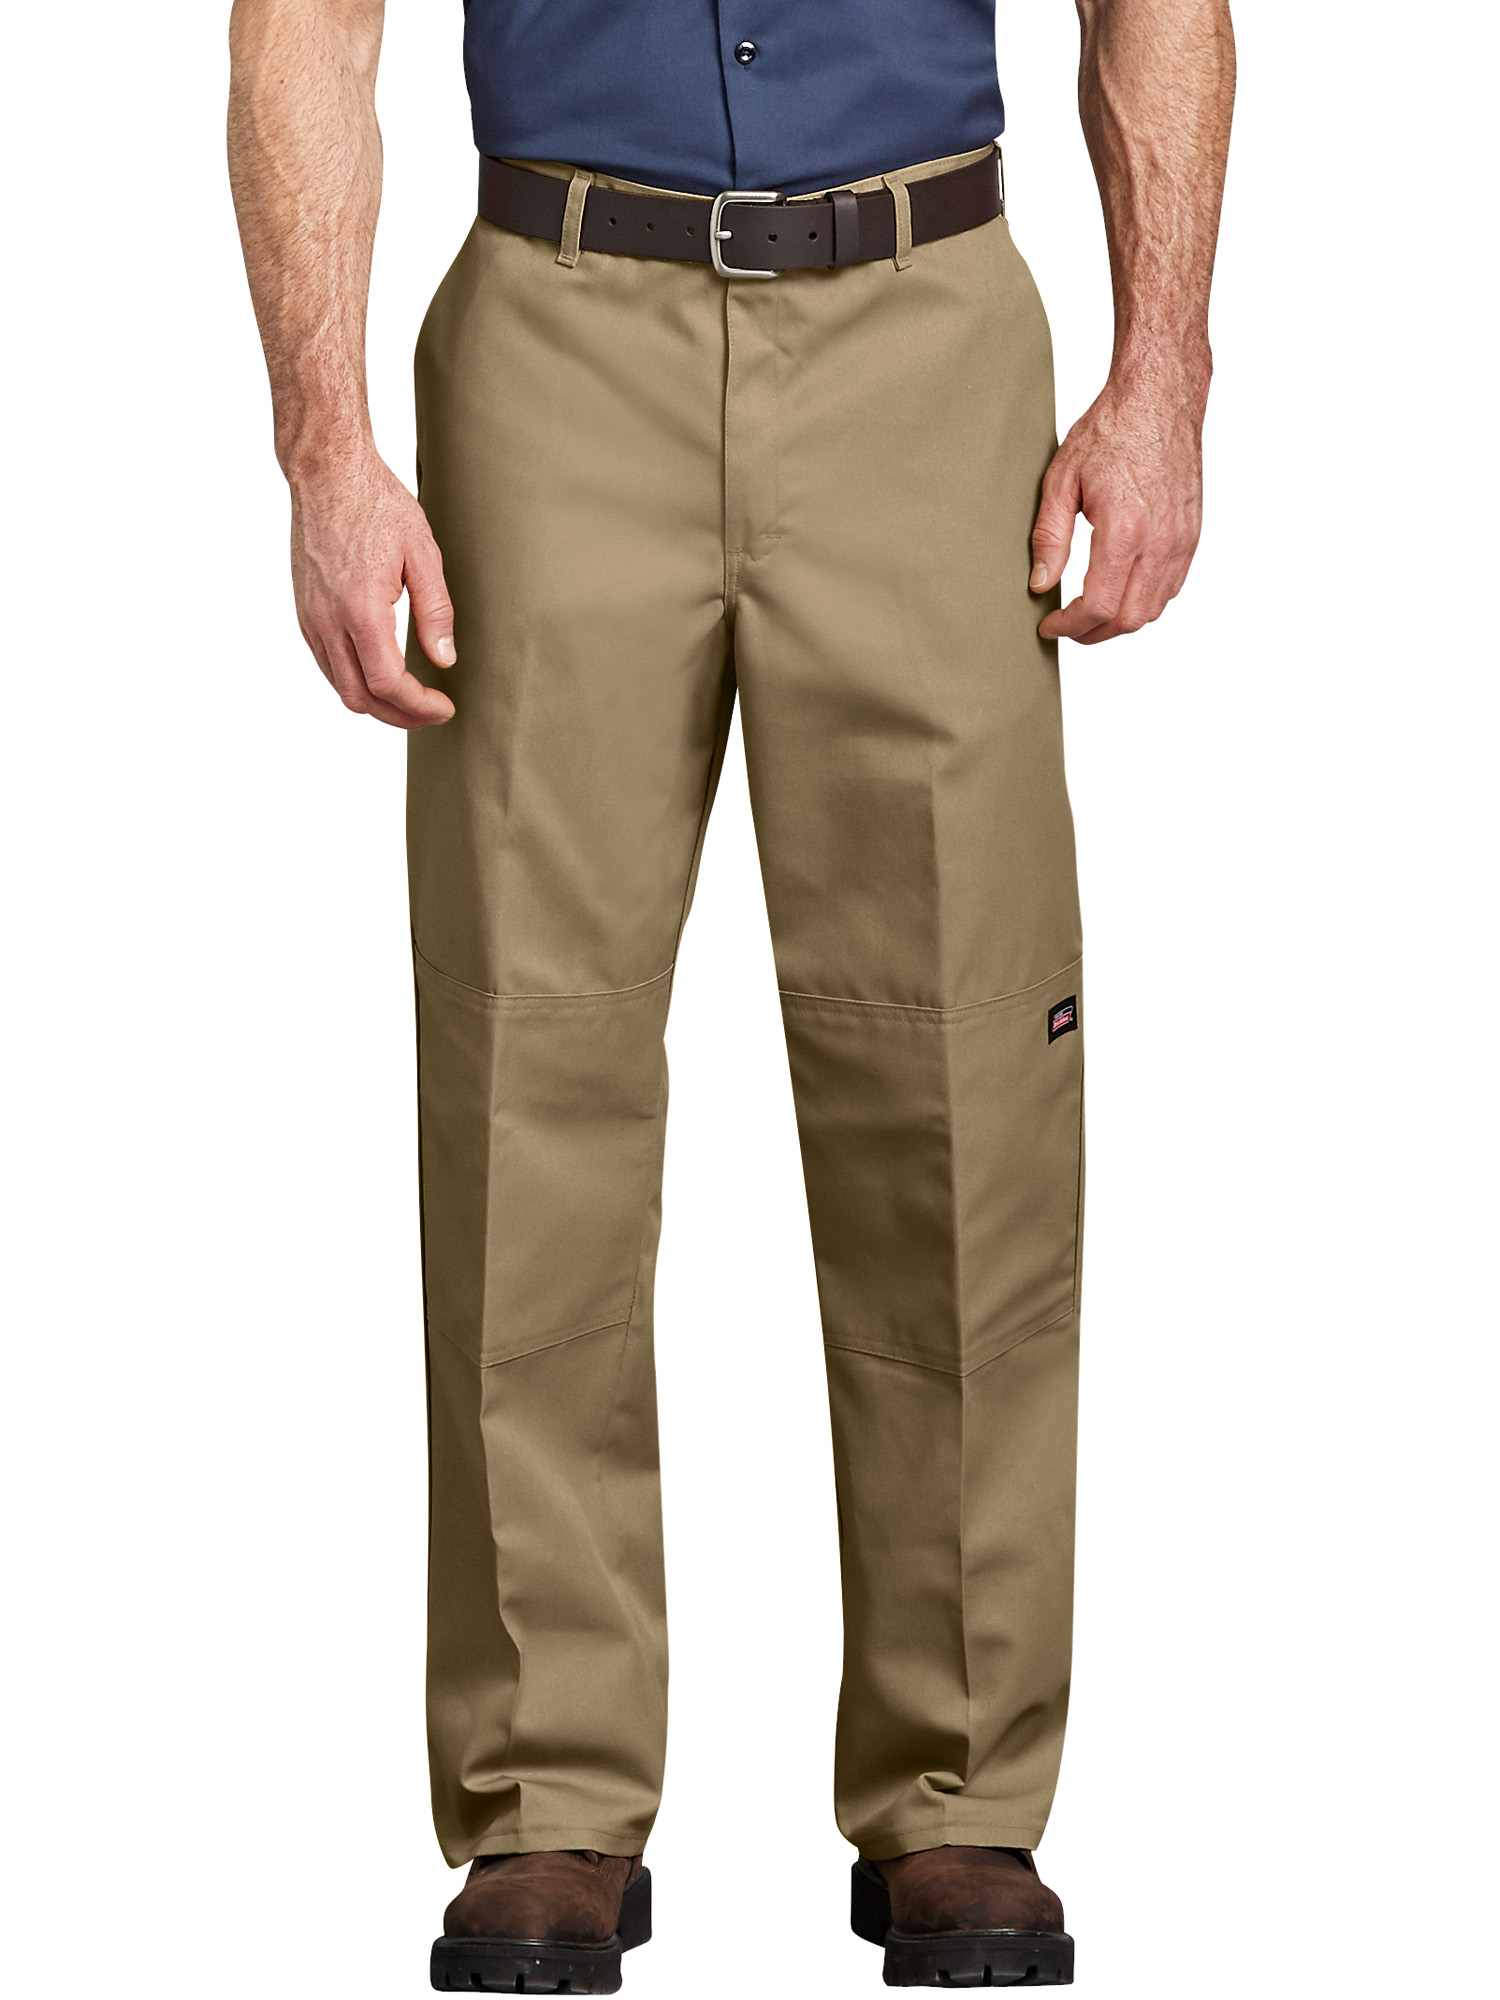 Genuine Dickies Big Men's Loose Fit Double-Knee Work Pants